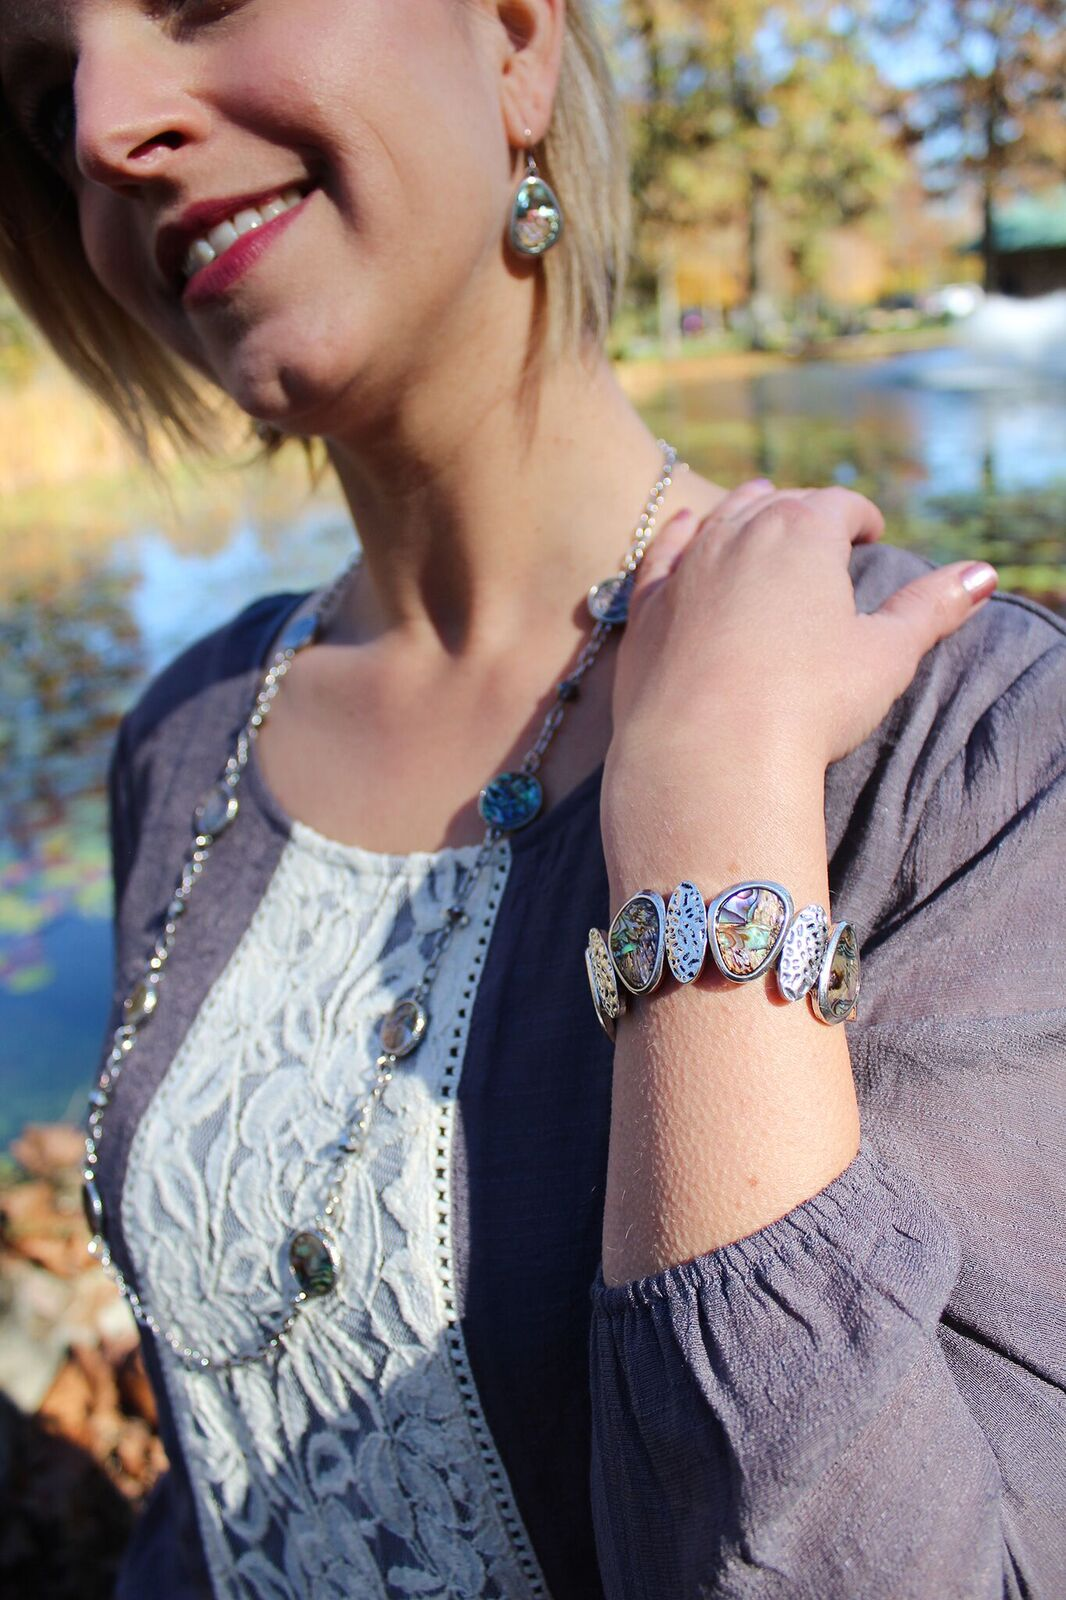 Abalone Bracelet 599021 and Earrings 599020 and Necklace 599022